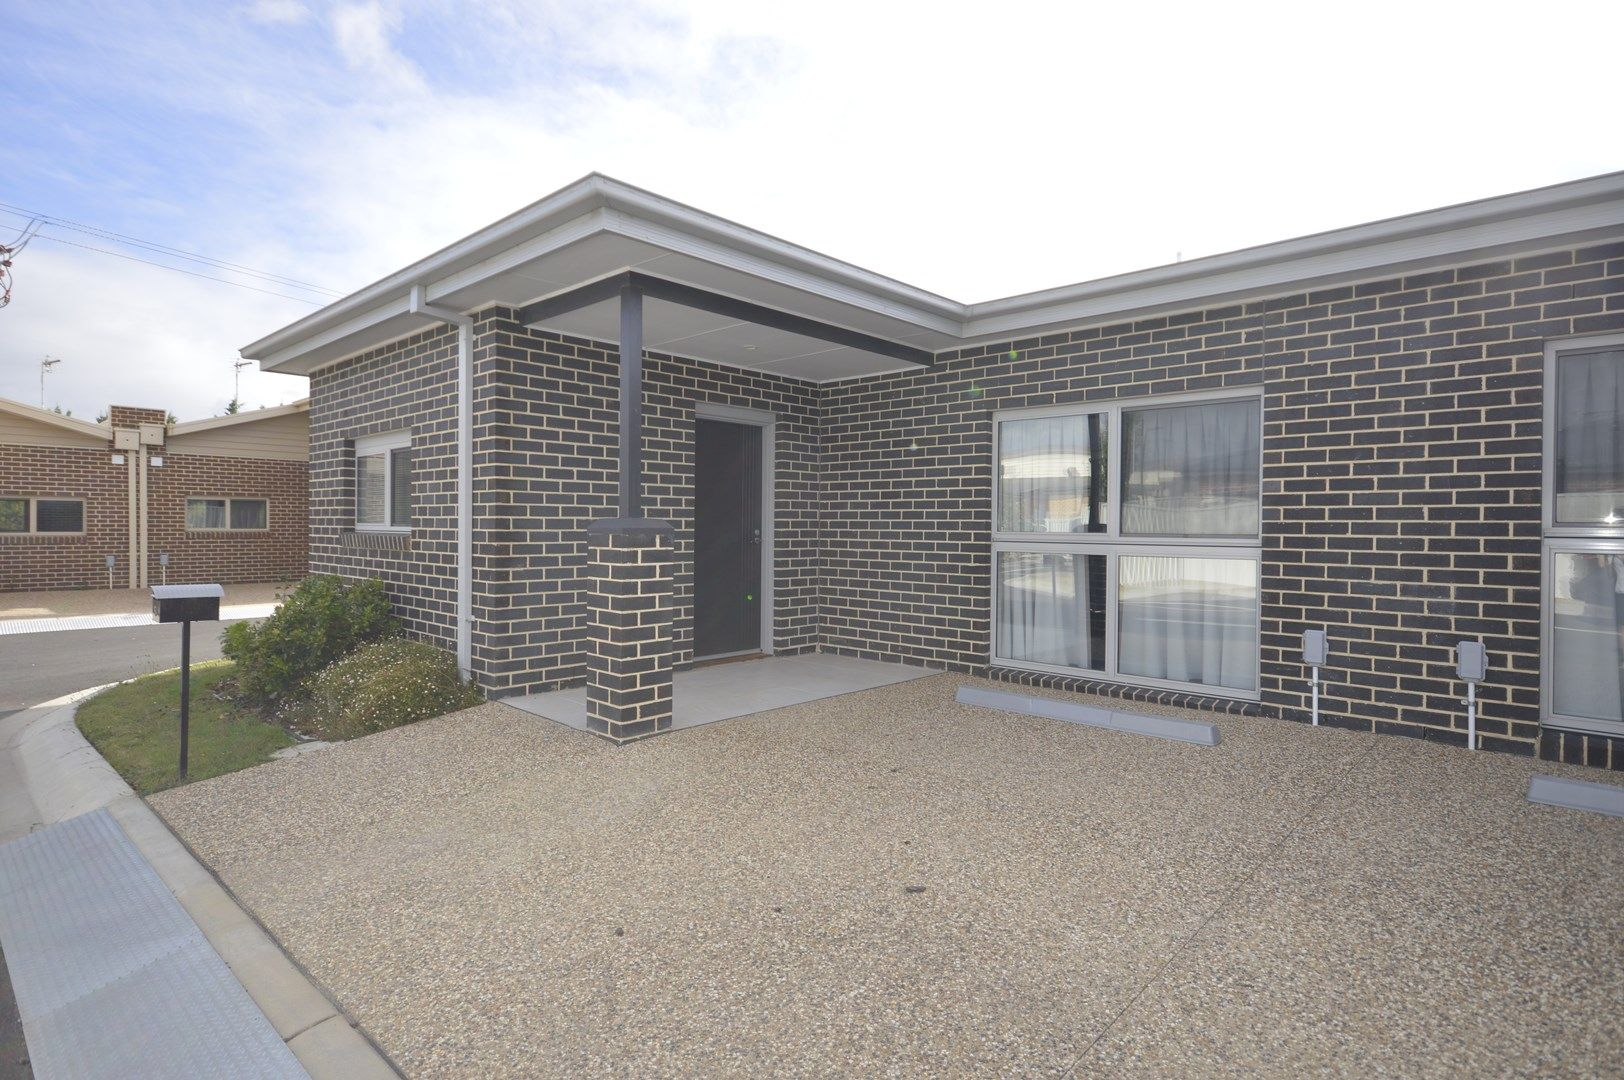 2 Bdrm Unit/83 Marshalls Road, Traralgon VIC 3844, Image 0